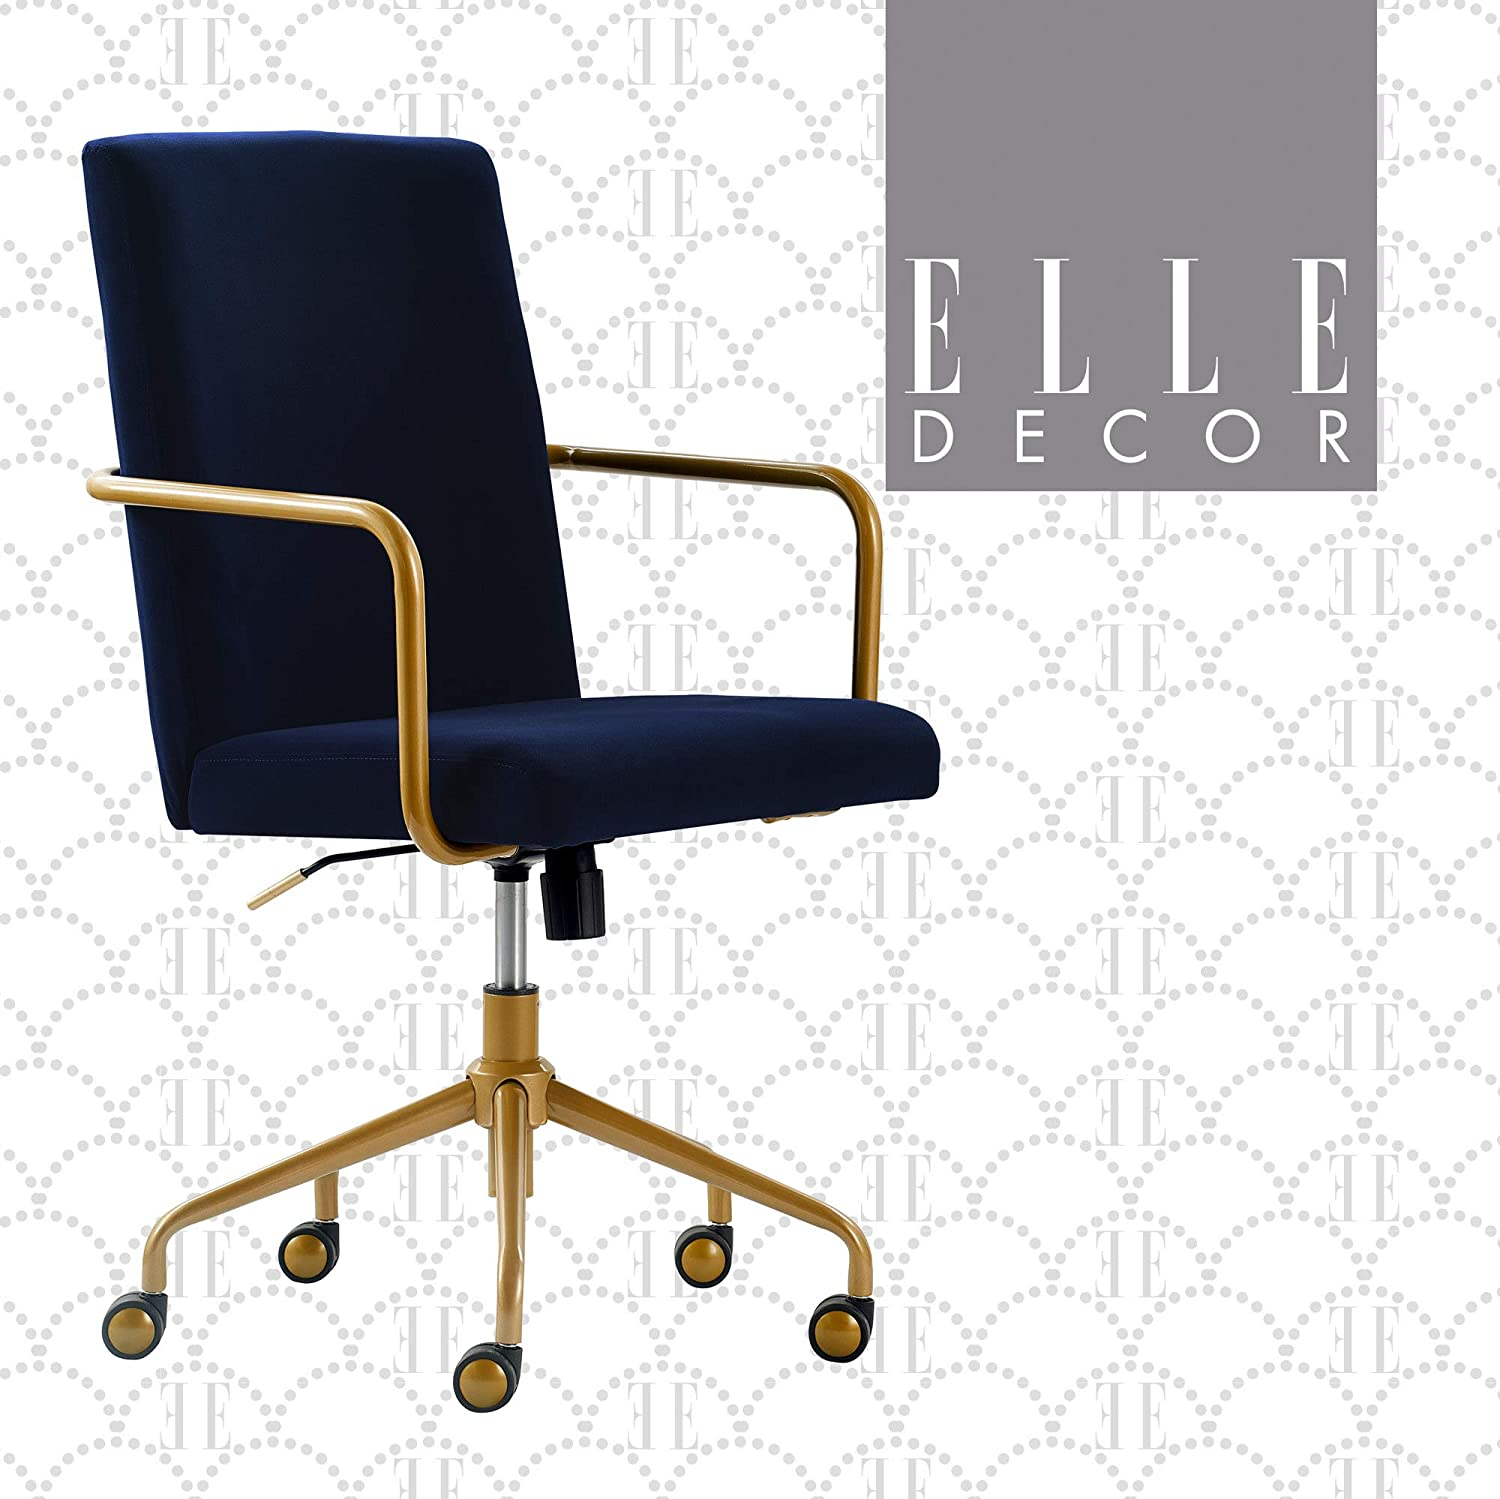 Amazon Com Elle Decor Giselle Modern Home Office Desk Chair High Back Adjustable Computer Chair With Gold Arms Base And Wheels Velvet Fabric Navy Blue Furniture Decor